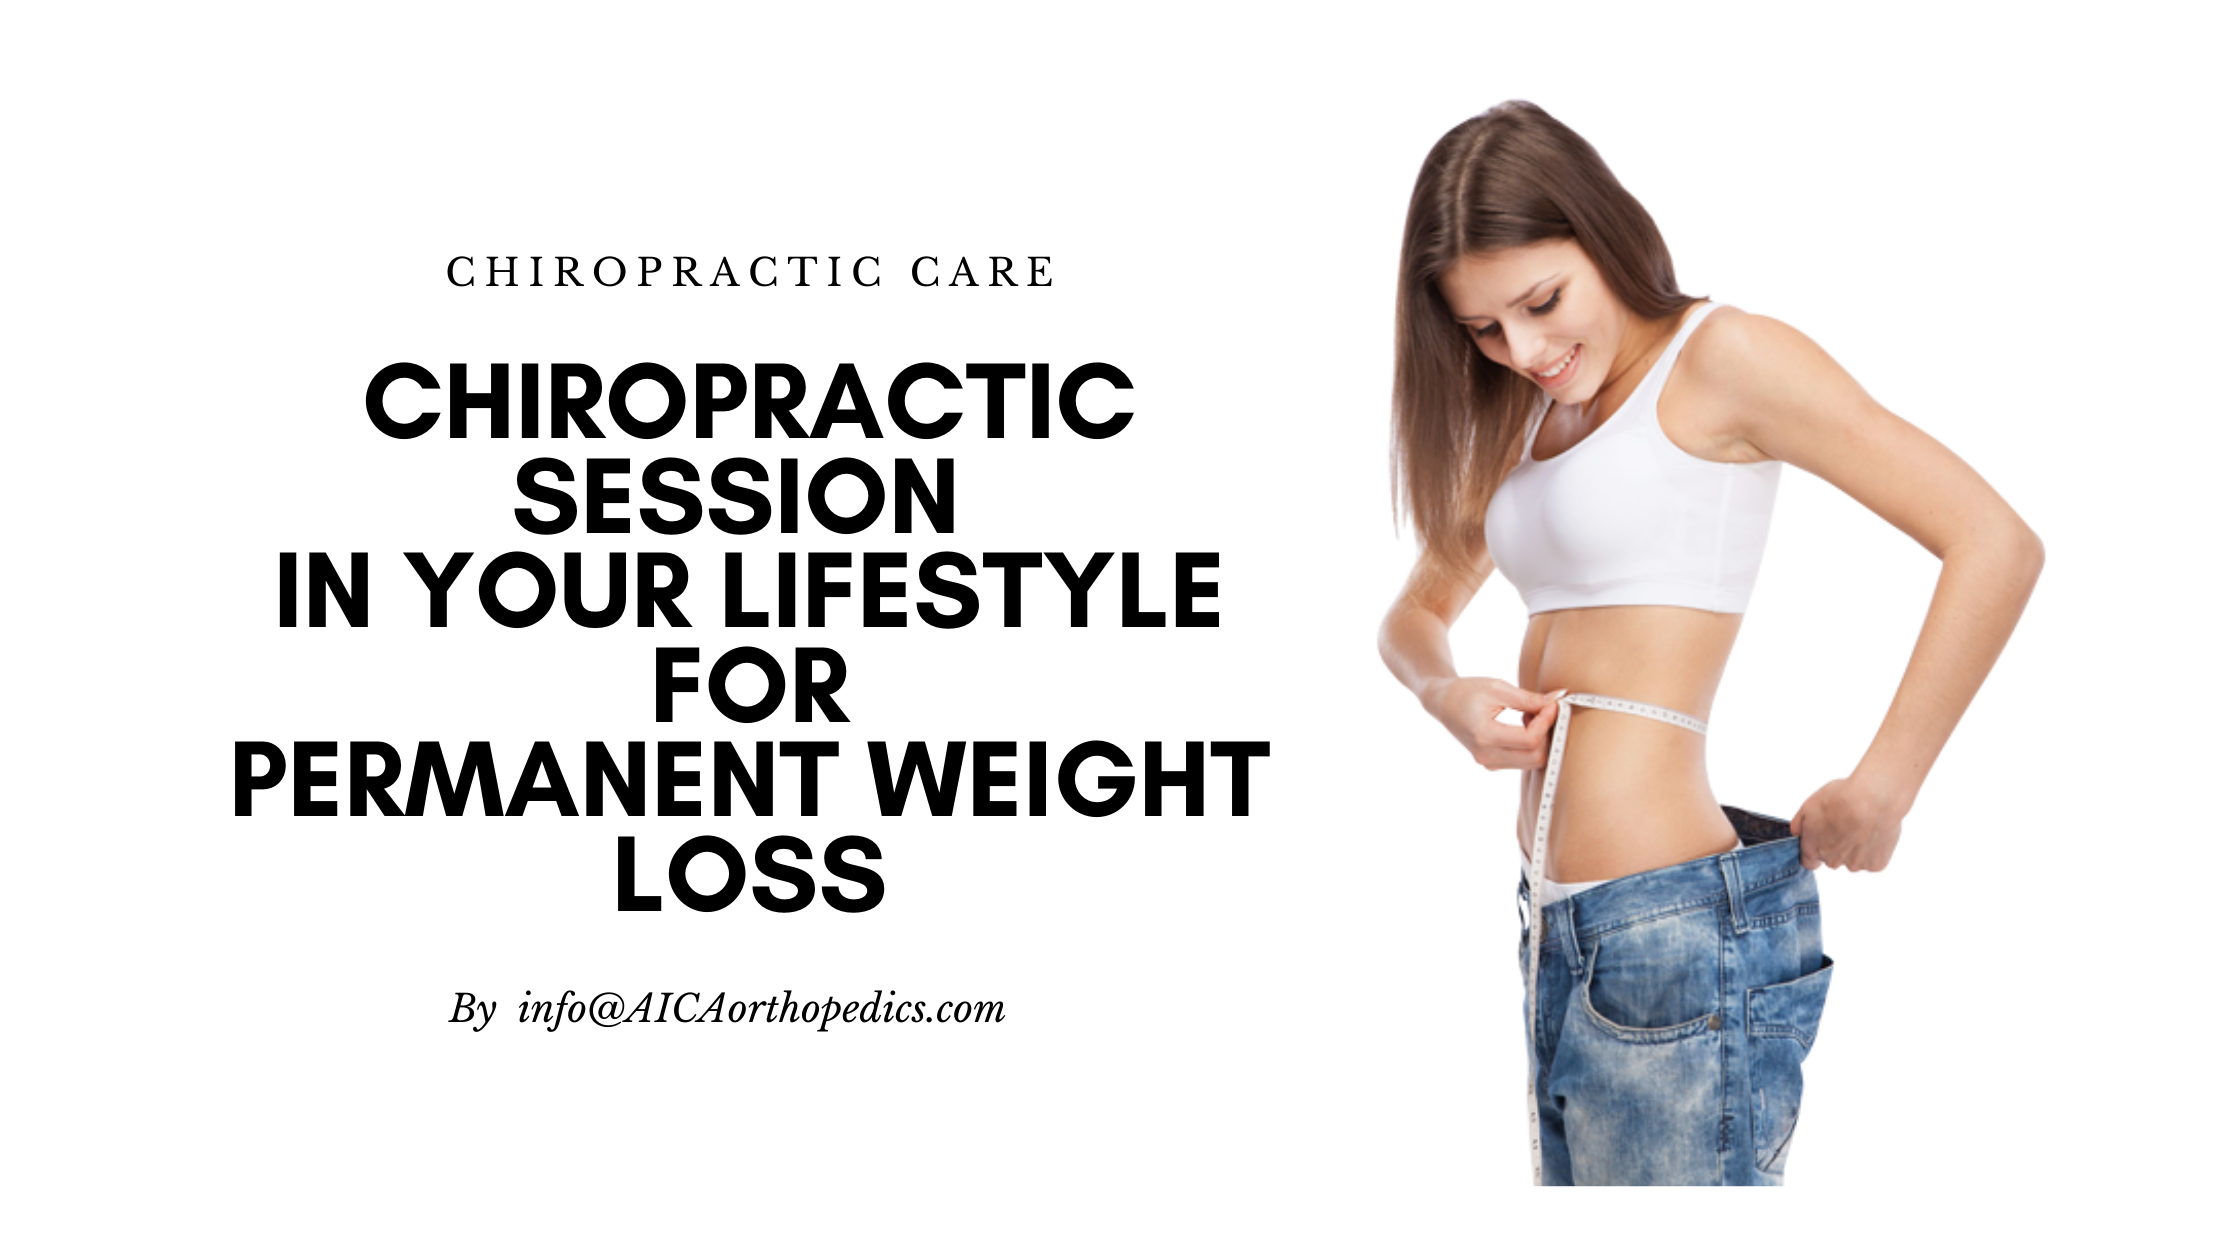 Ladies! Forget Fad Diets and Add a Chiropractic Session in Your Lifestyle for Permanent Weight Loss